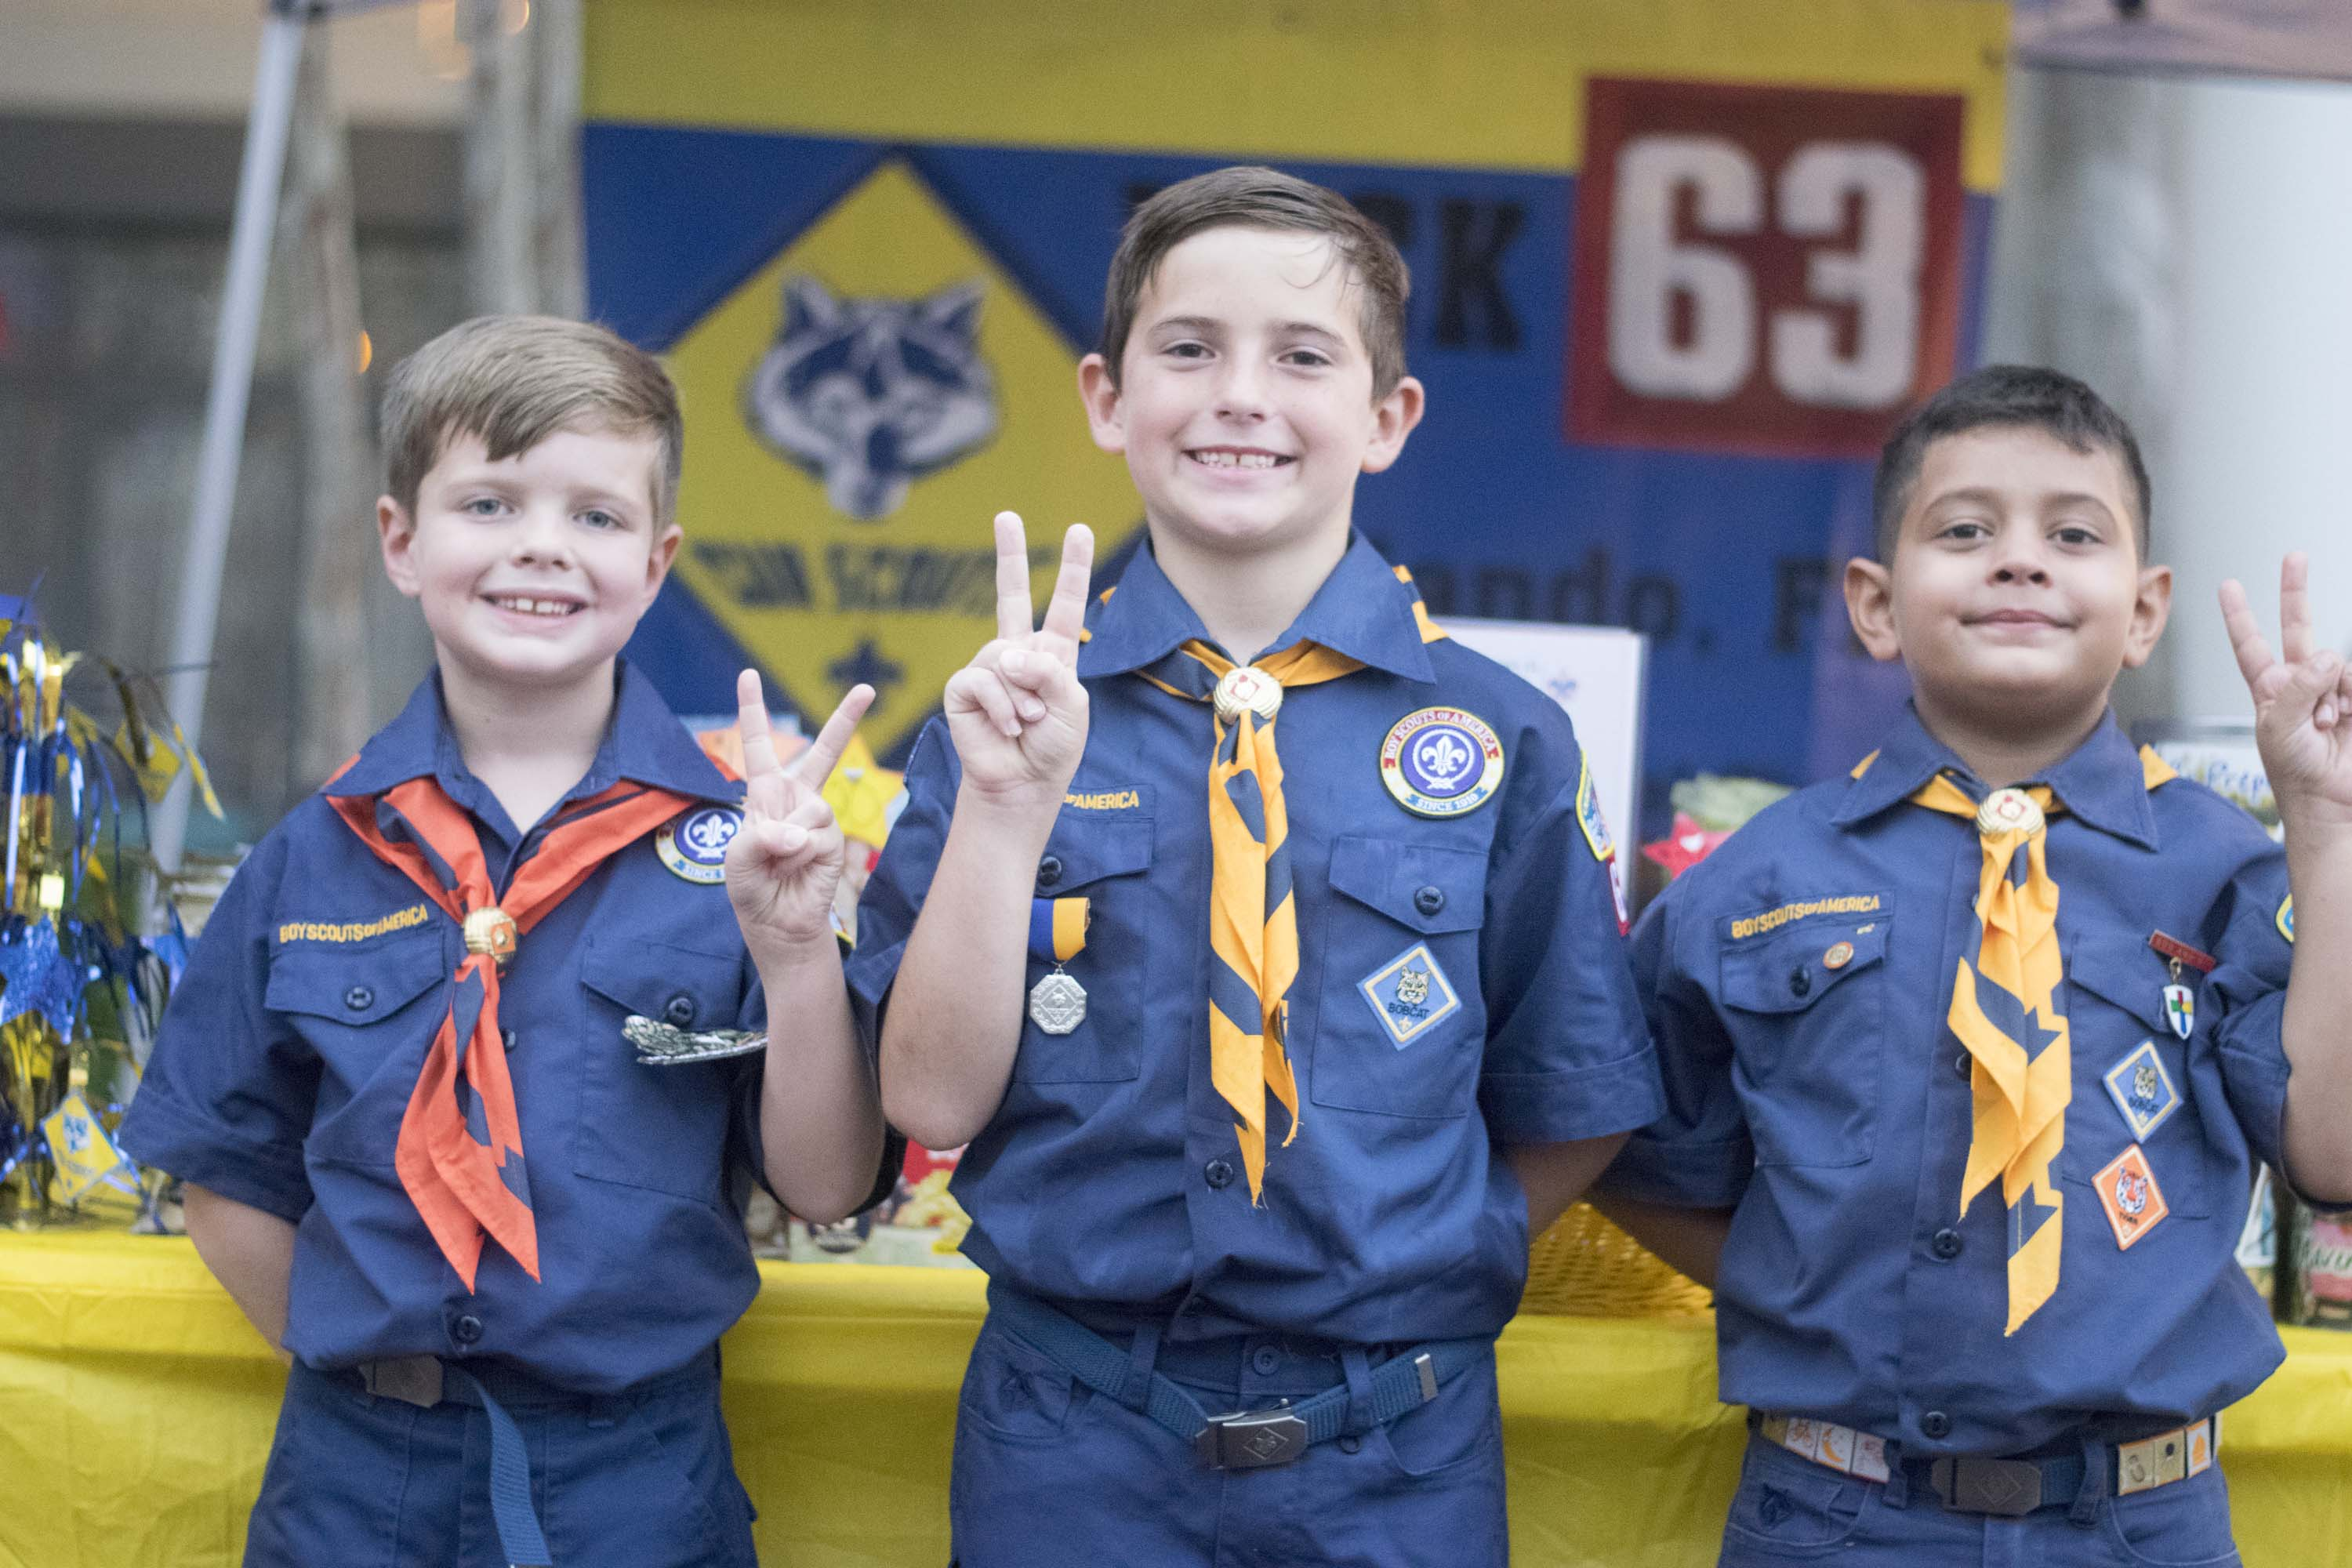 Boy Scouts at the event